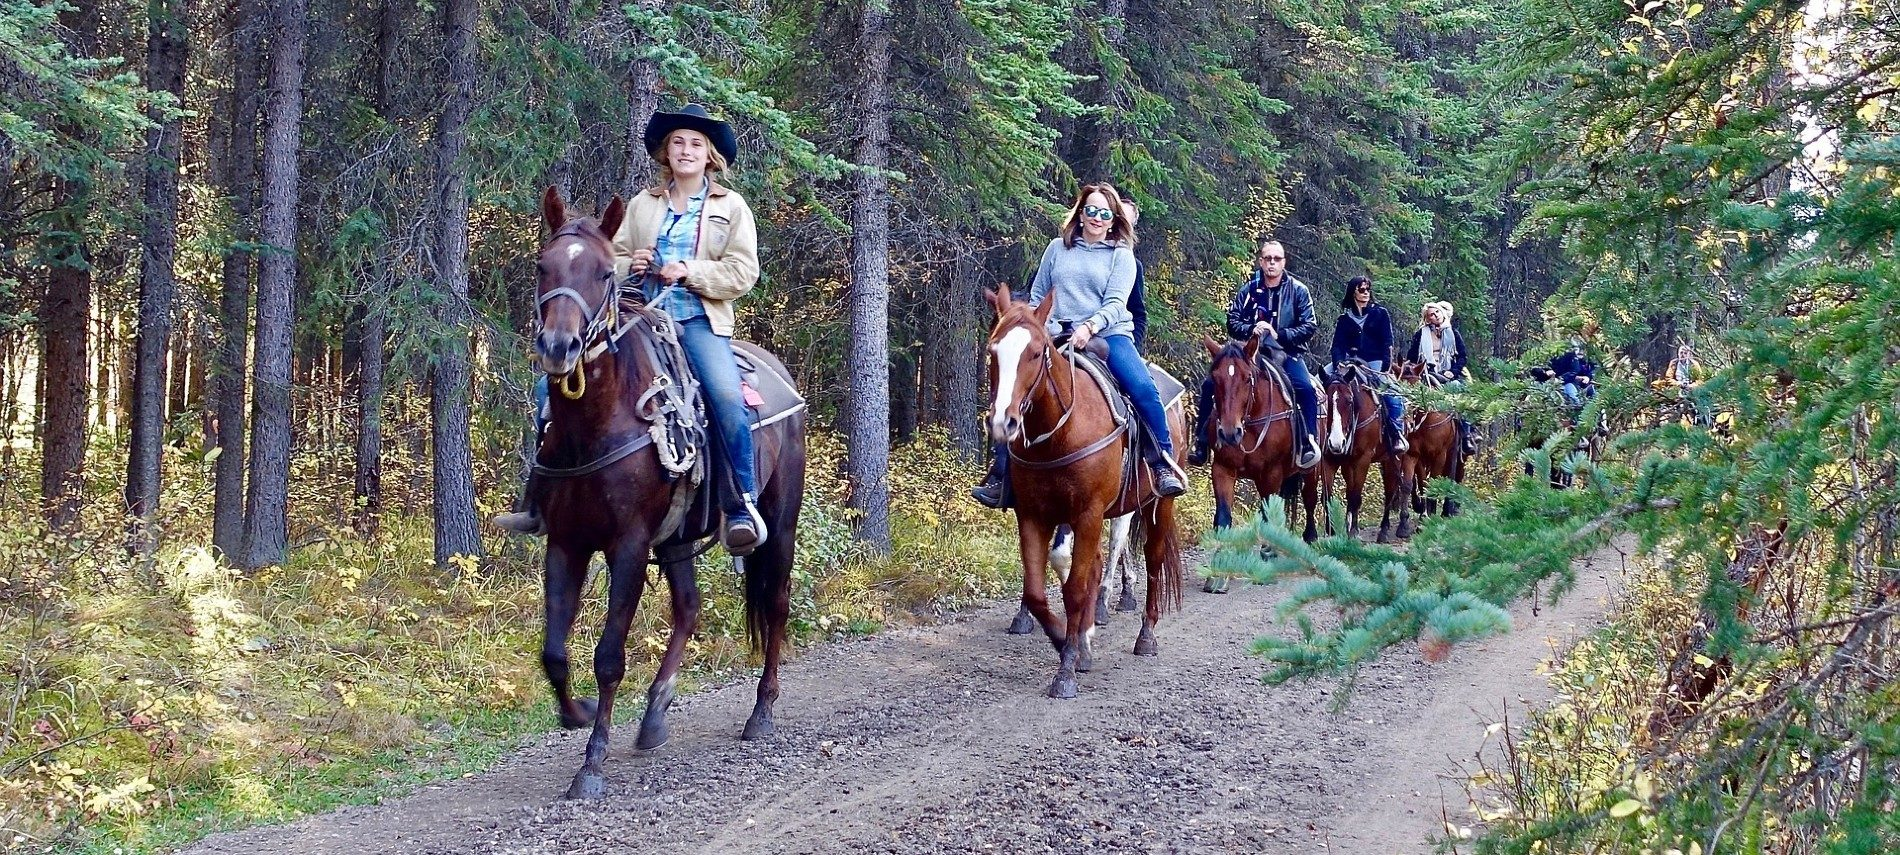 A group of people on brown horses being led by a guide on a trail through the woods